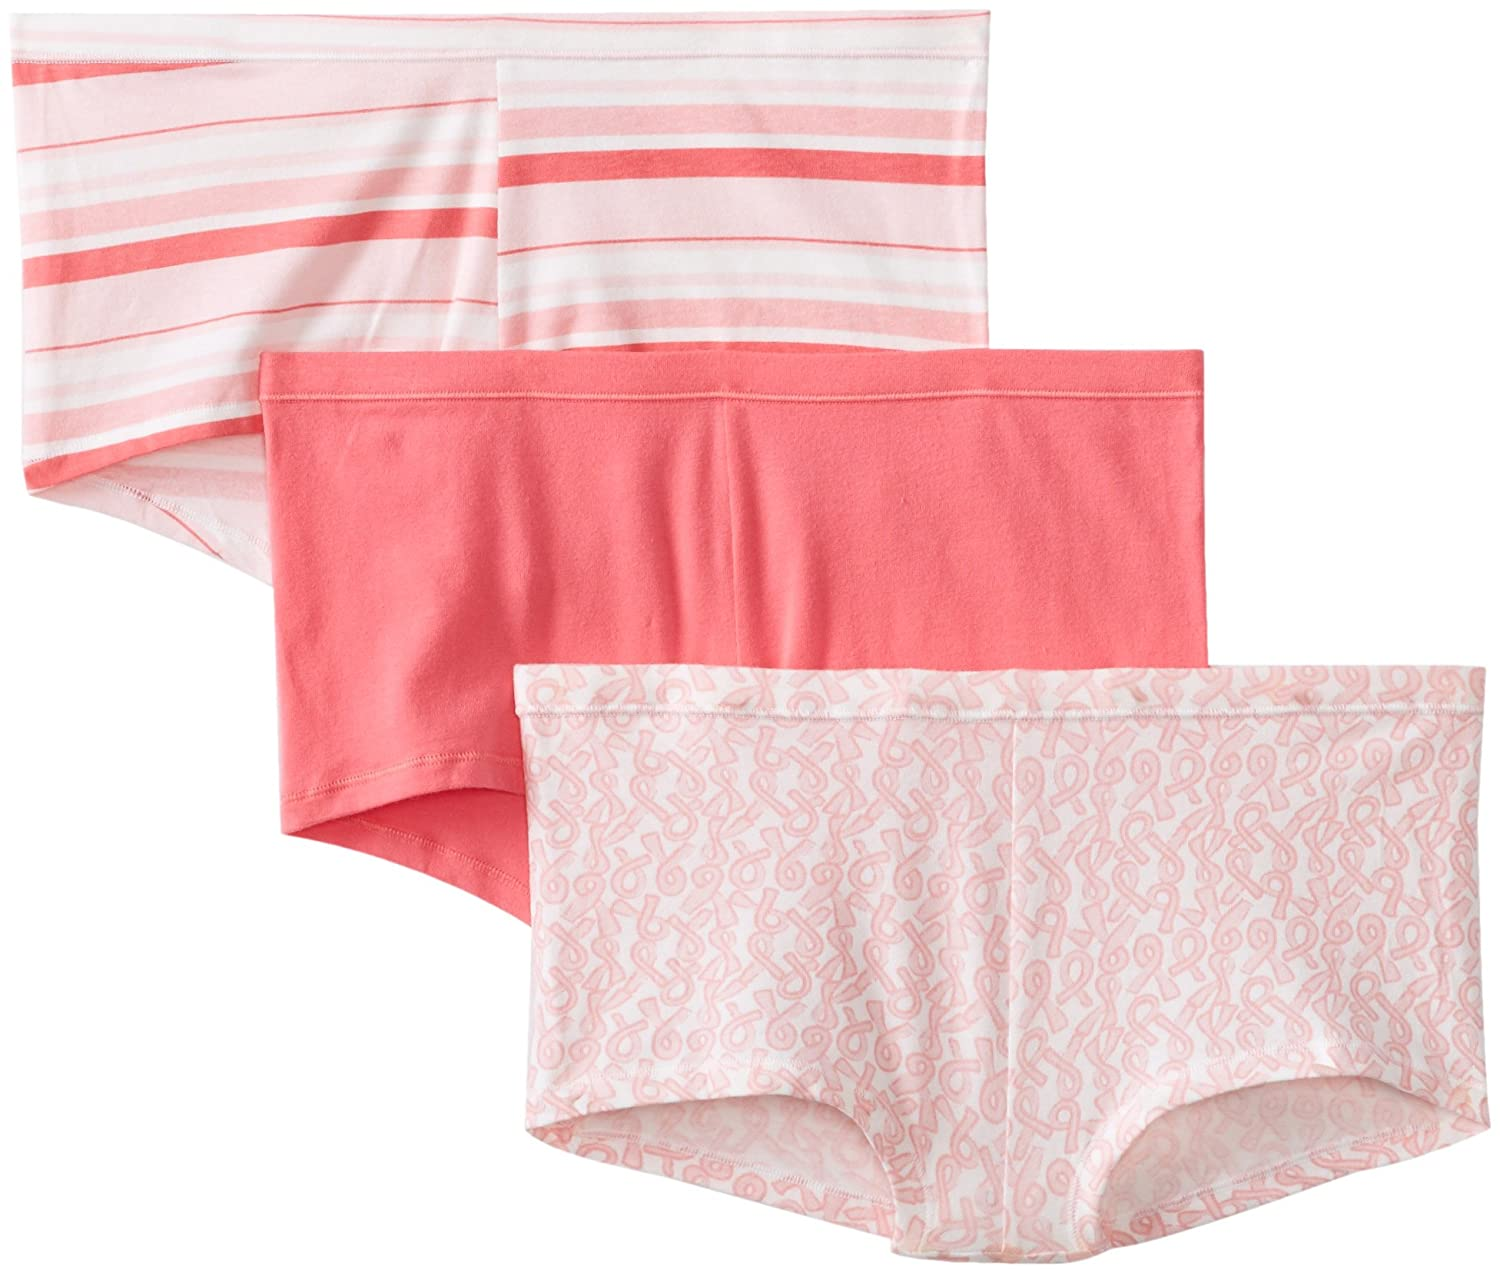 66556cc2b5975 Hanes Women s Comfortsoft Cotton Stretch Boy Brief (Pack of 3)(assorted  colors) at Amazon Women s Clothing store  Boy Shorts Panties